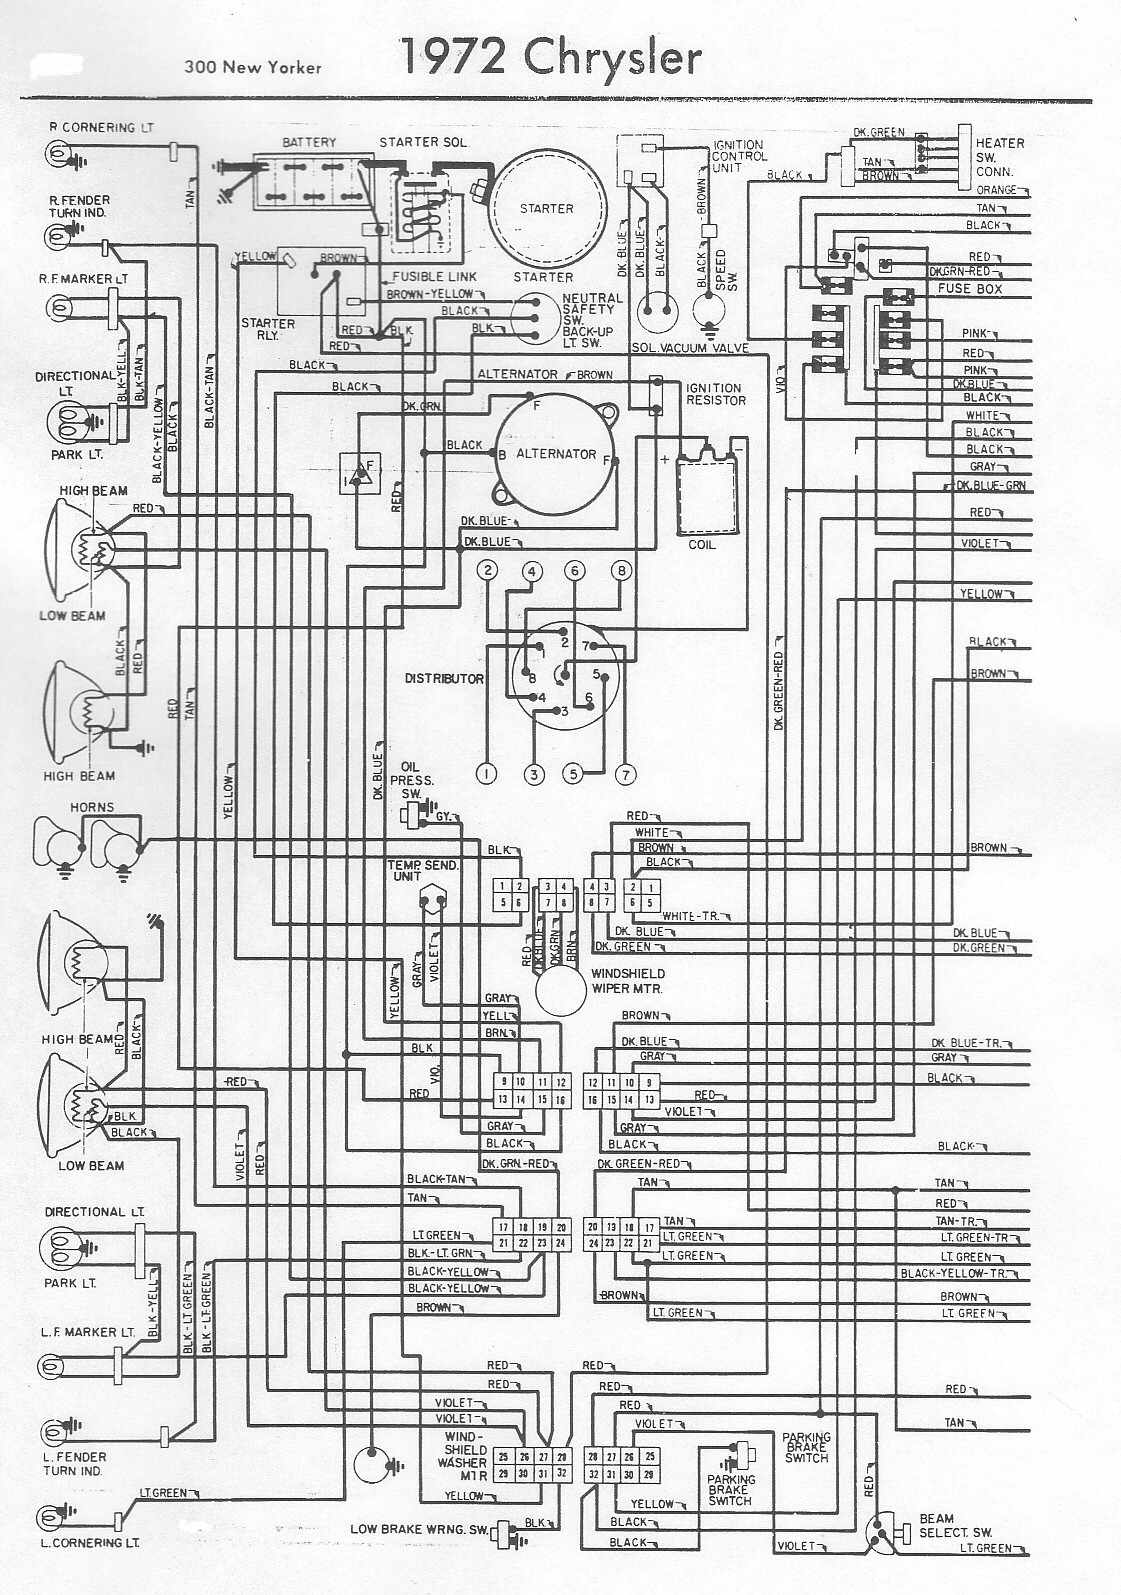 1956 cadillac wiring diagram simple wiring diagram dodge wiring diagram wires 1934 dodge wiring diagrams [ 1121 x 1595 Pixel ]